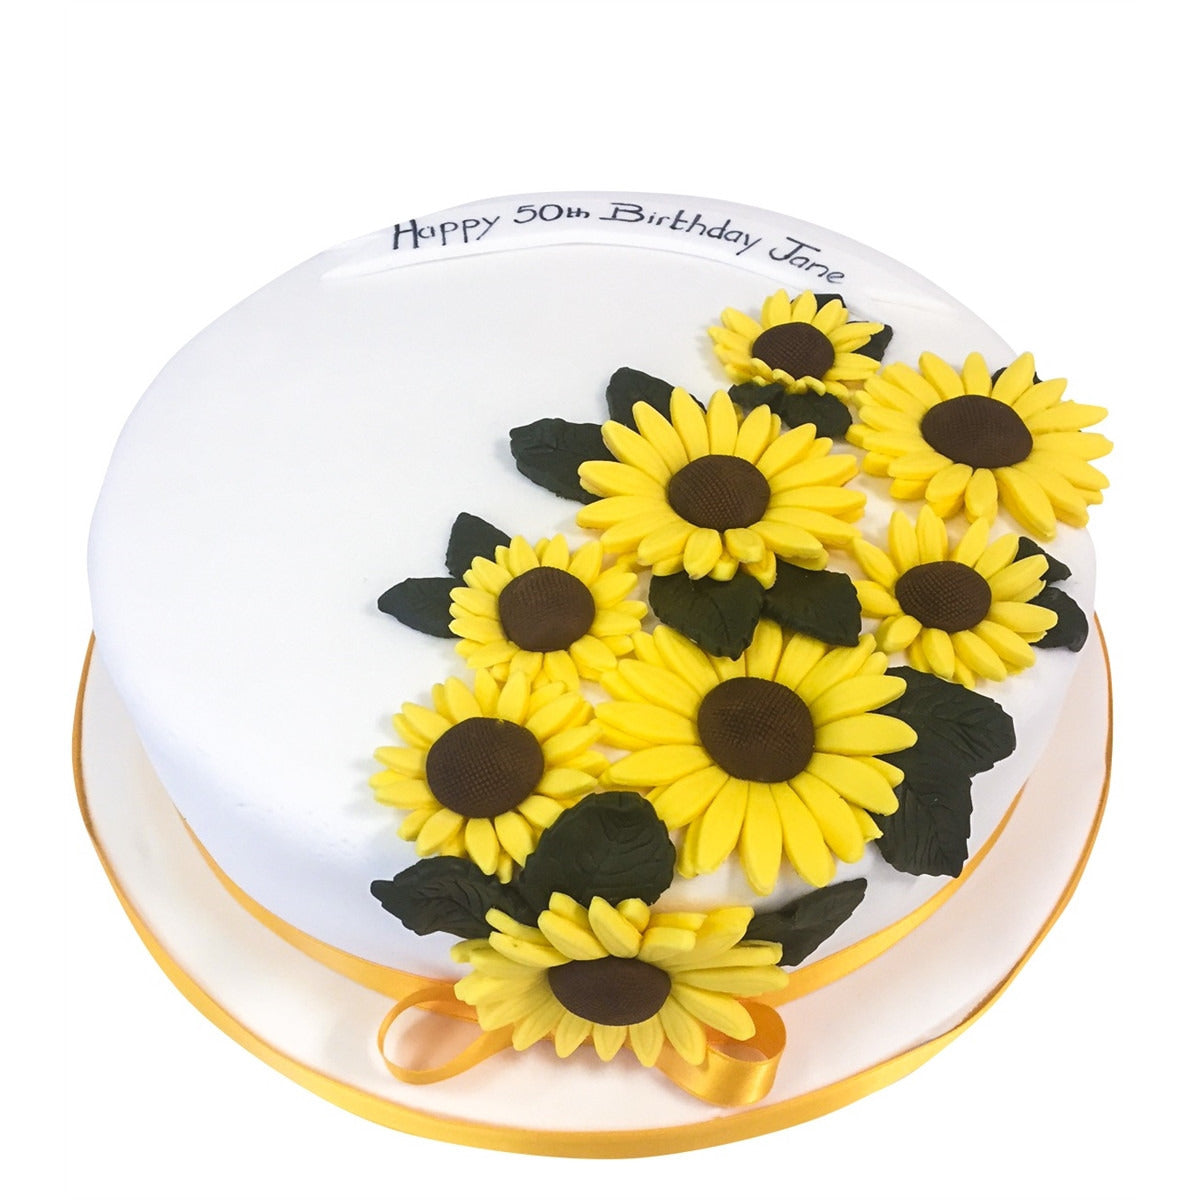 Sunflower Cake - Buy Online, Free UK Delivery - New Cakes